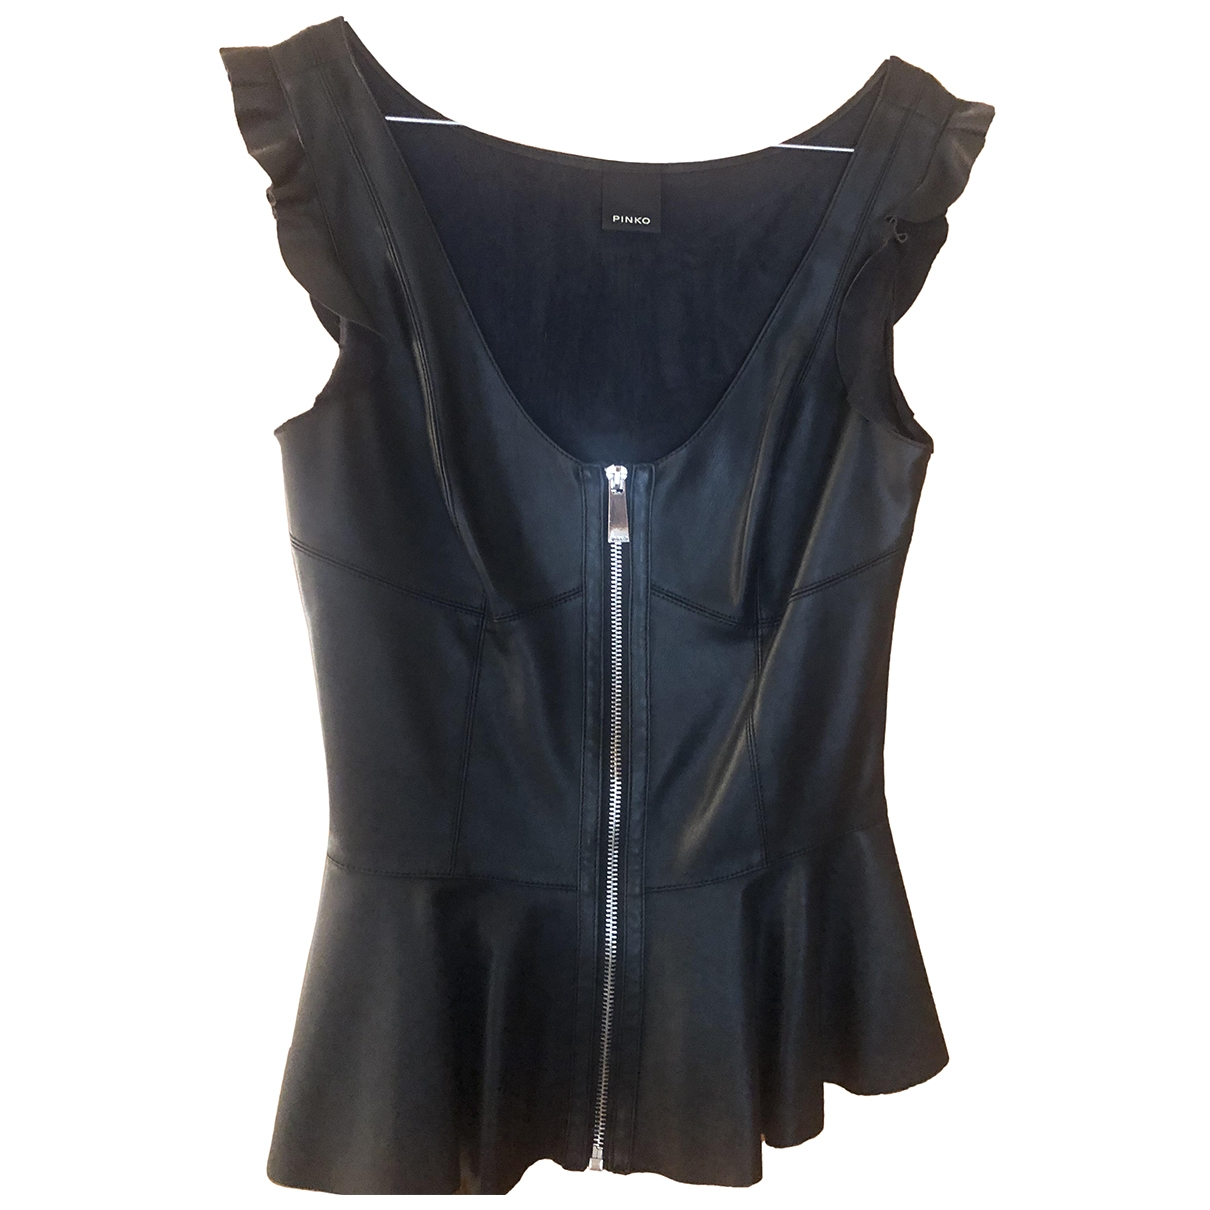 Pinko \N Black Leather  top for Women 38 IT